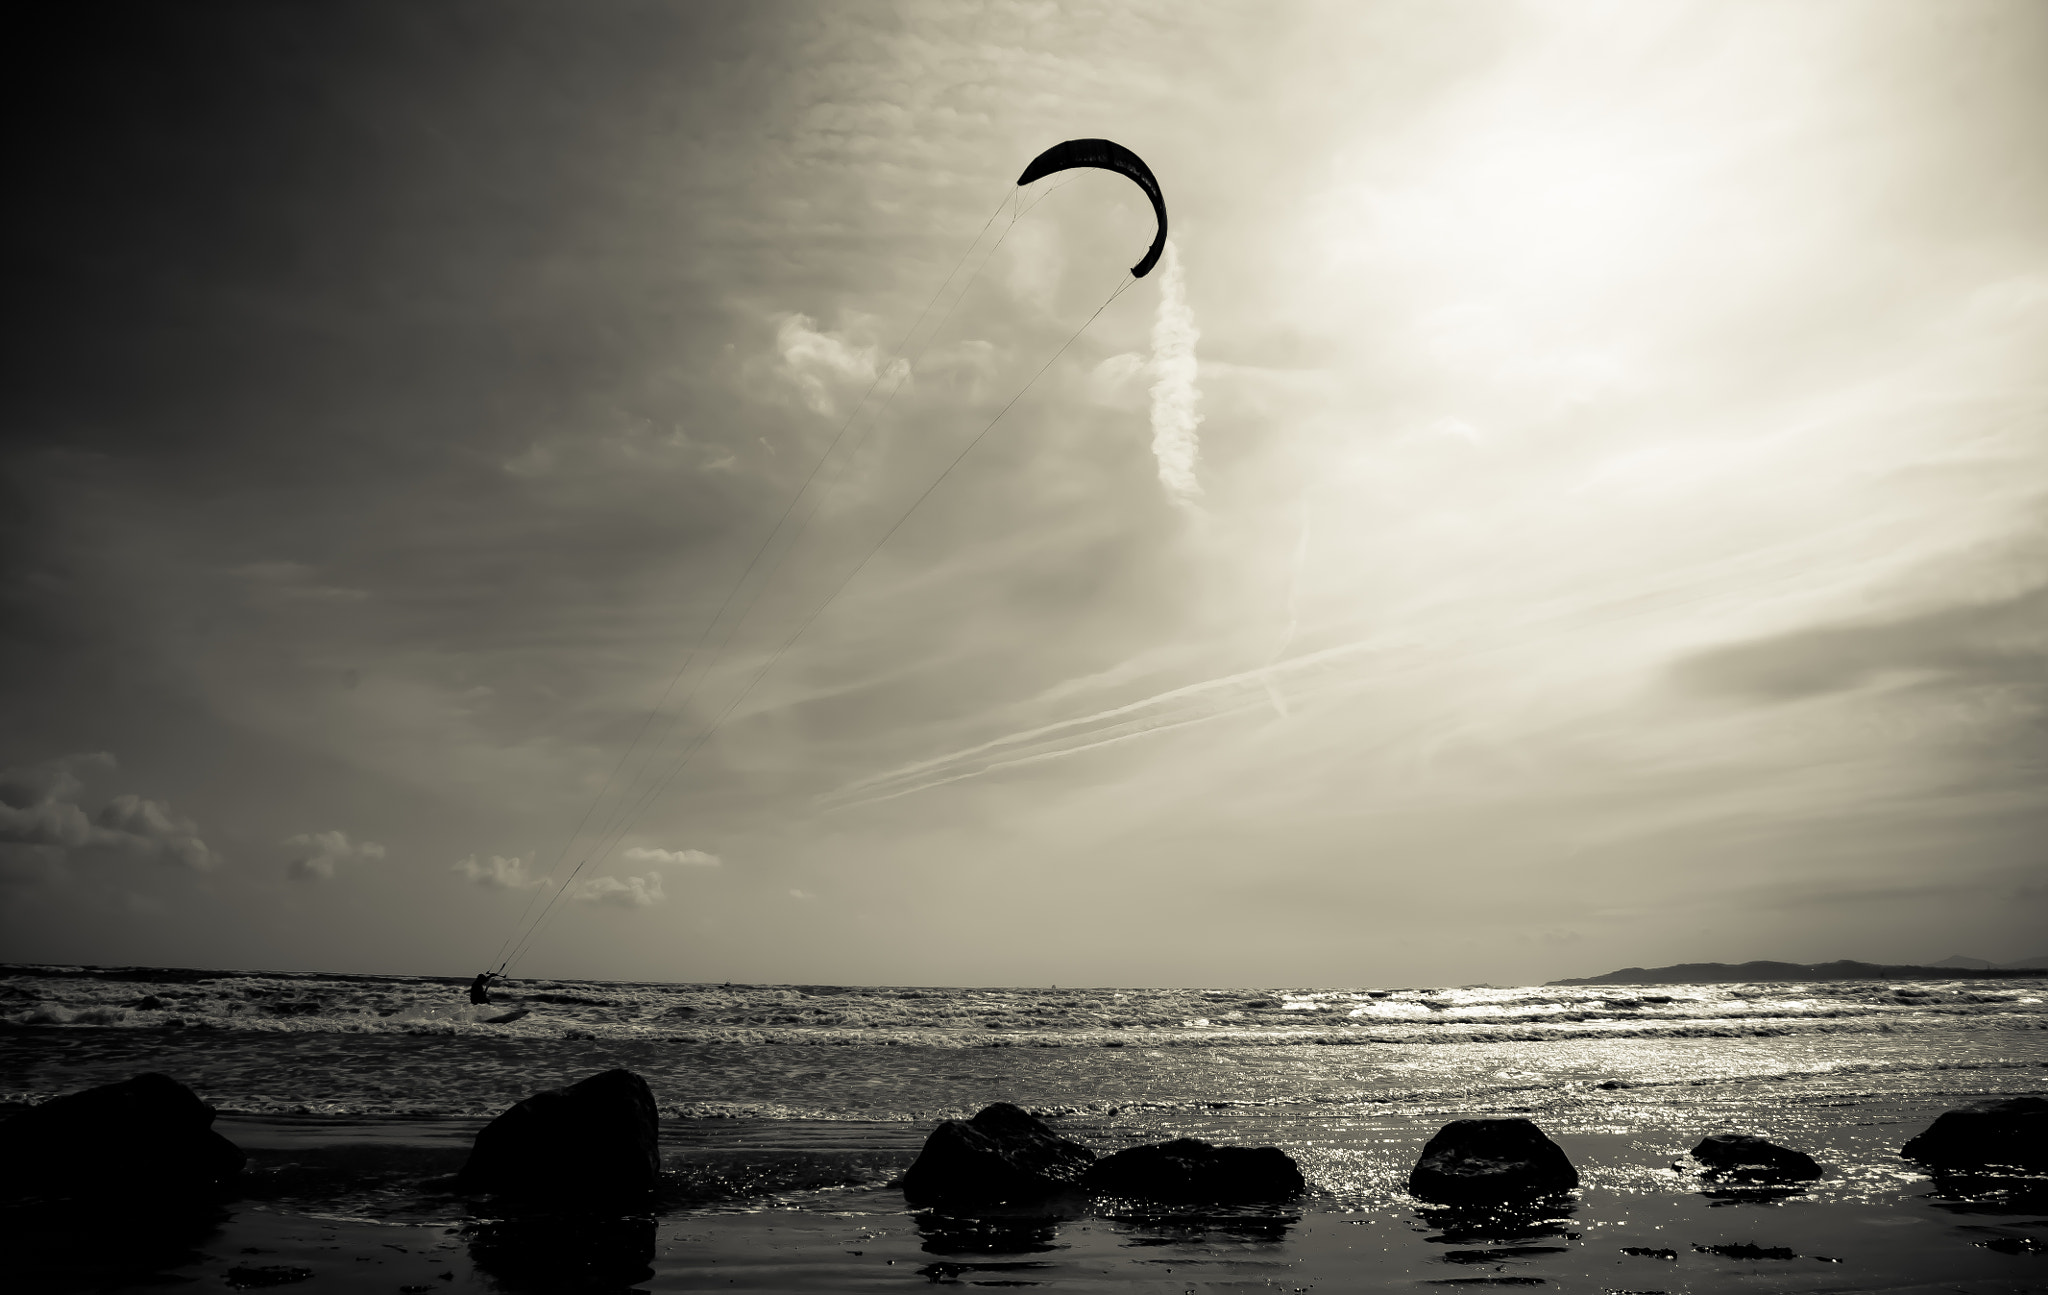 Photograph Kite Surfing by Dan Alexandru on 500px